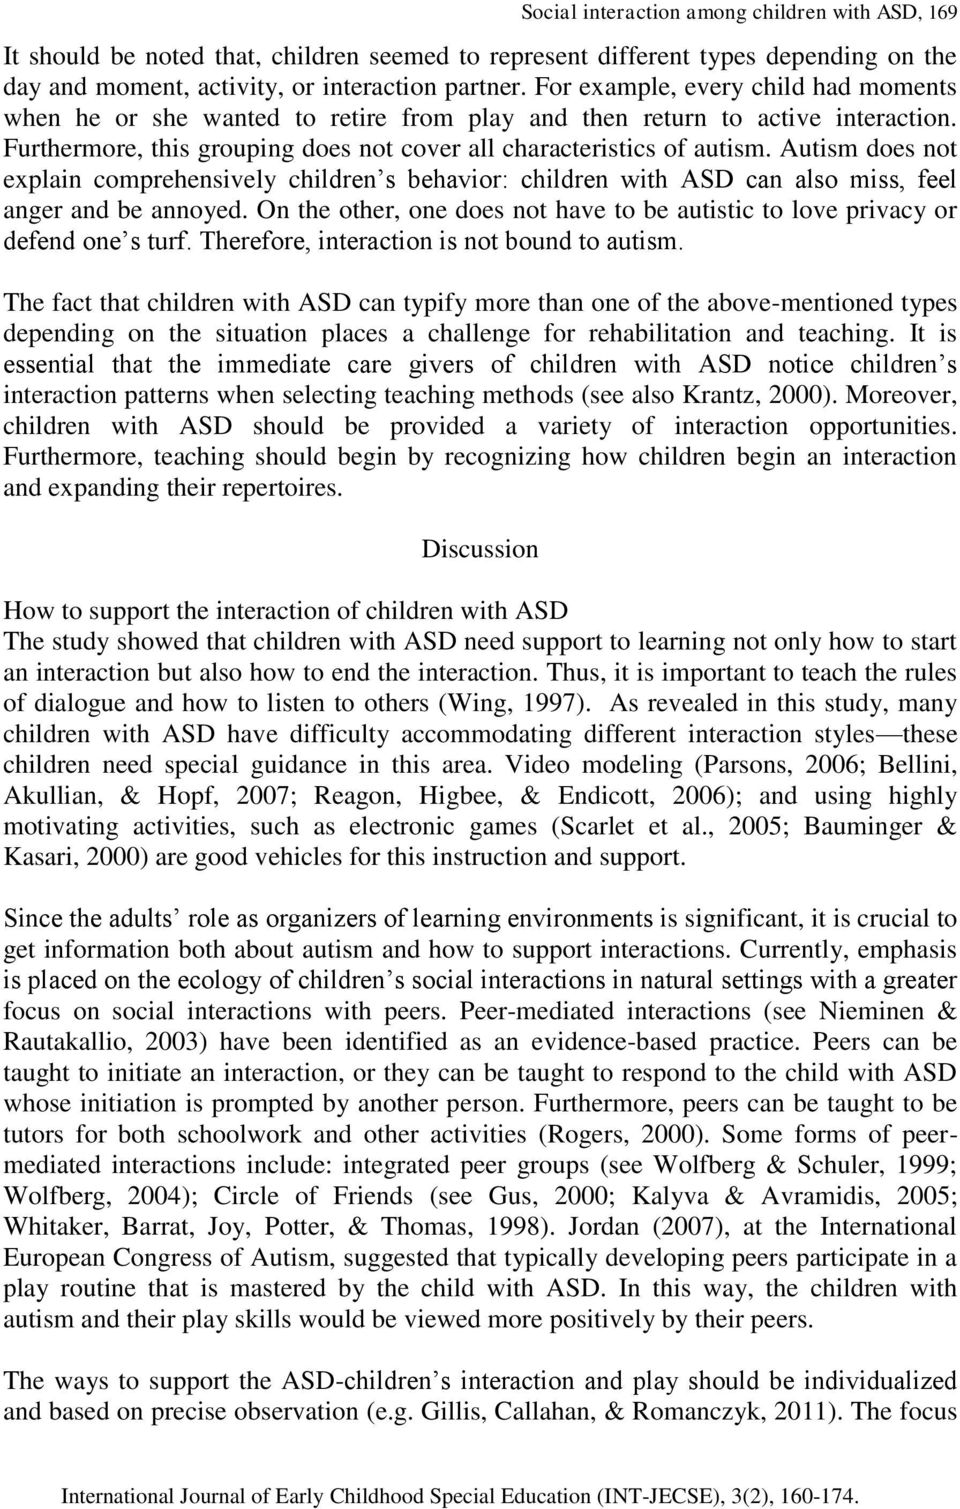 Autism does not explain comprehensively children s behavior: children with ASD can also miss, feel anger and be annoyed.